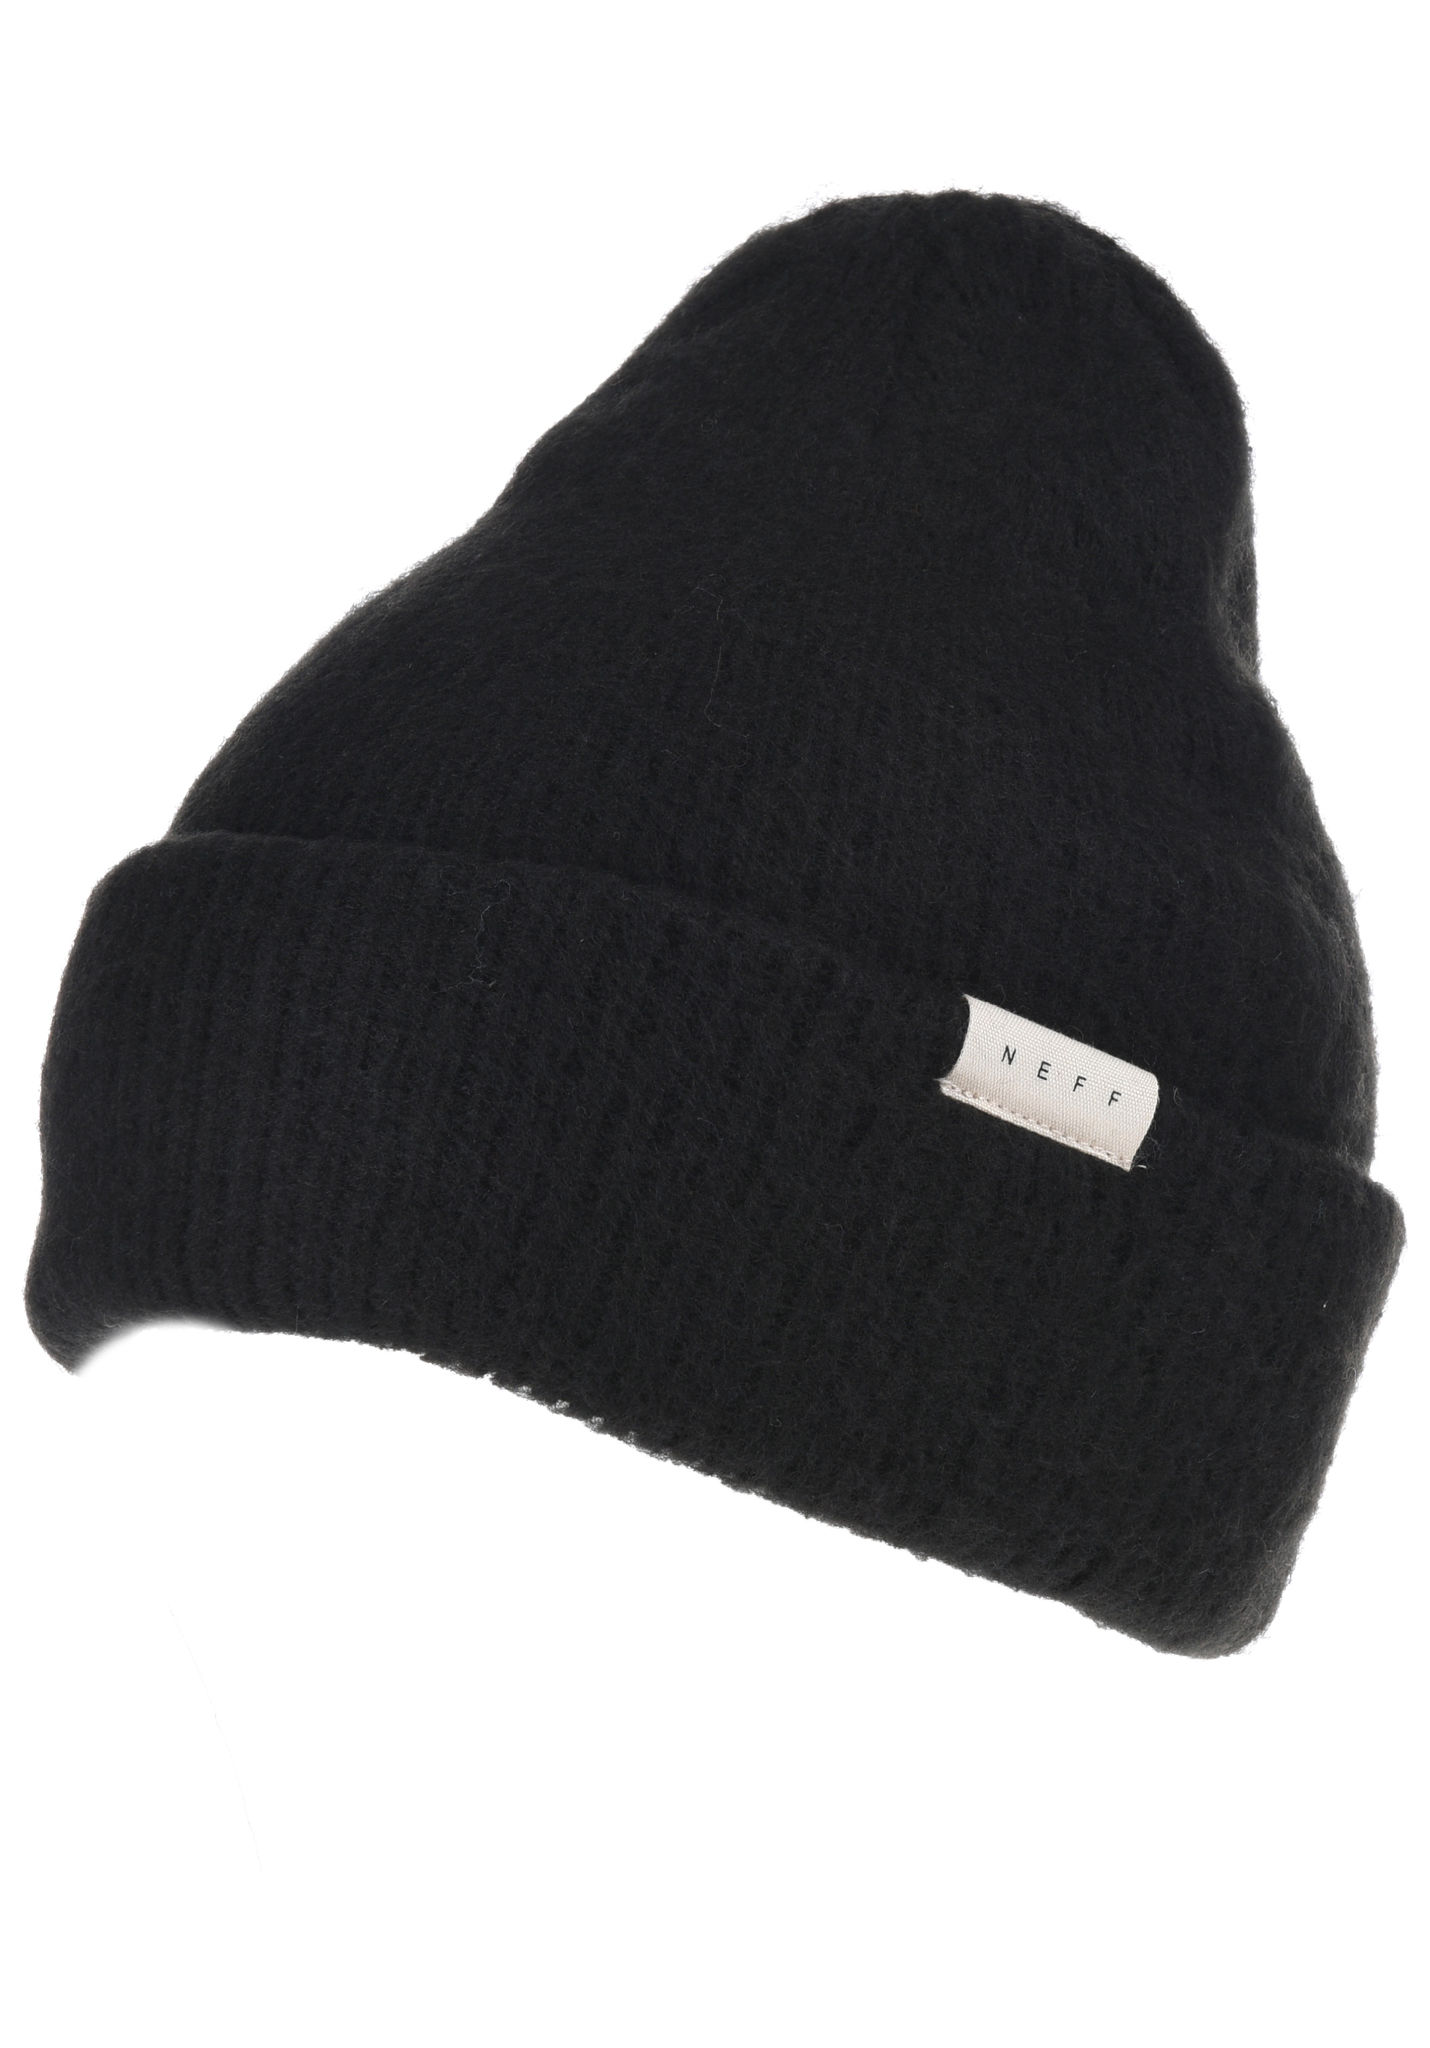 6b5d92af5d5 NEFF Anya - Beanie for Women - Black - Planet Sports